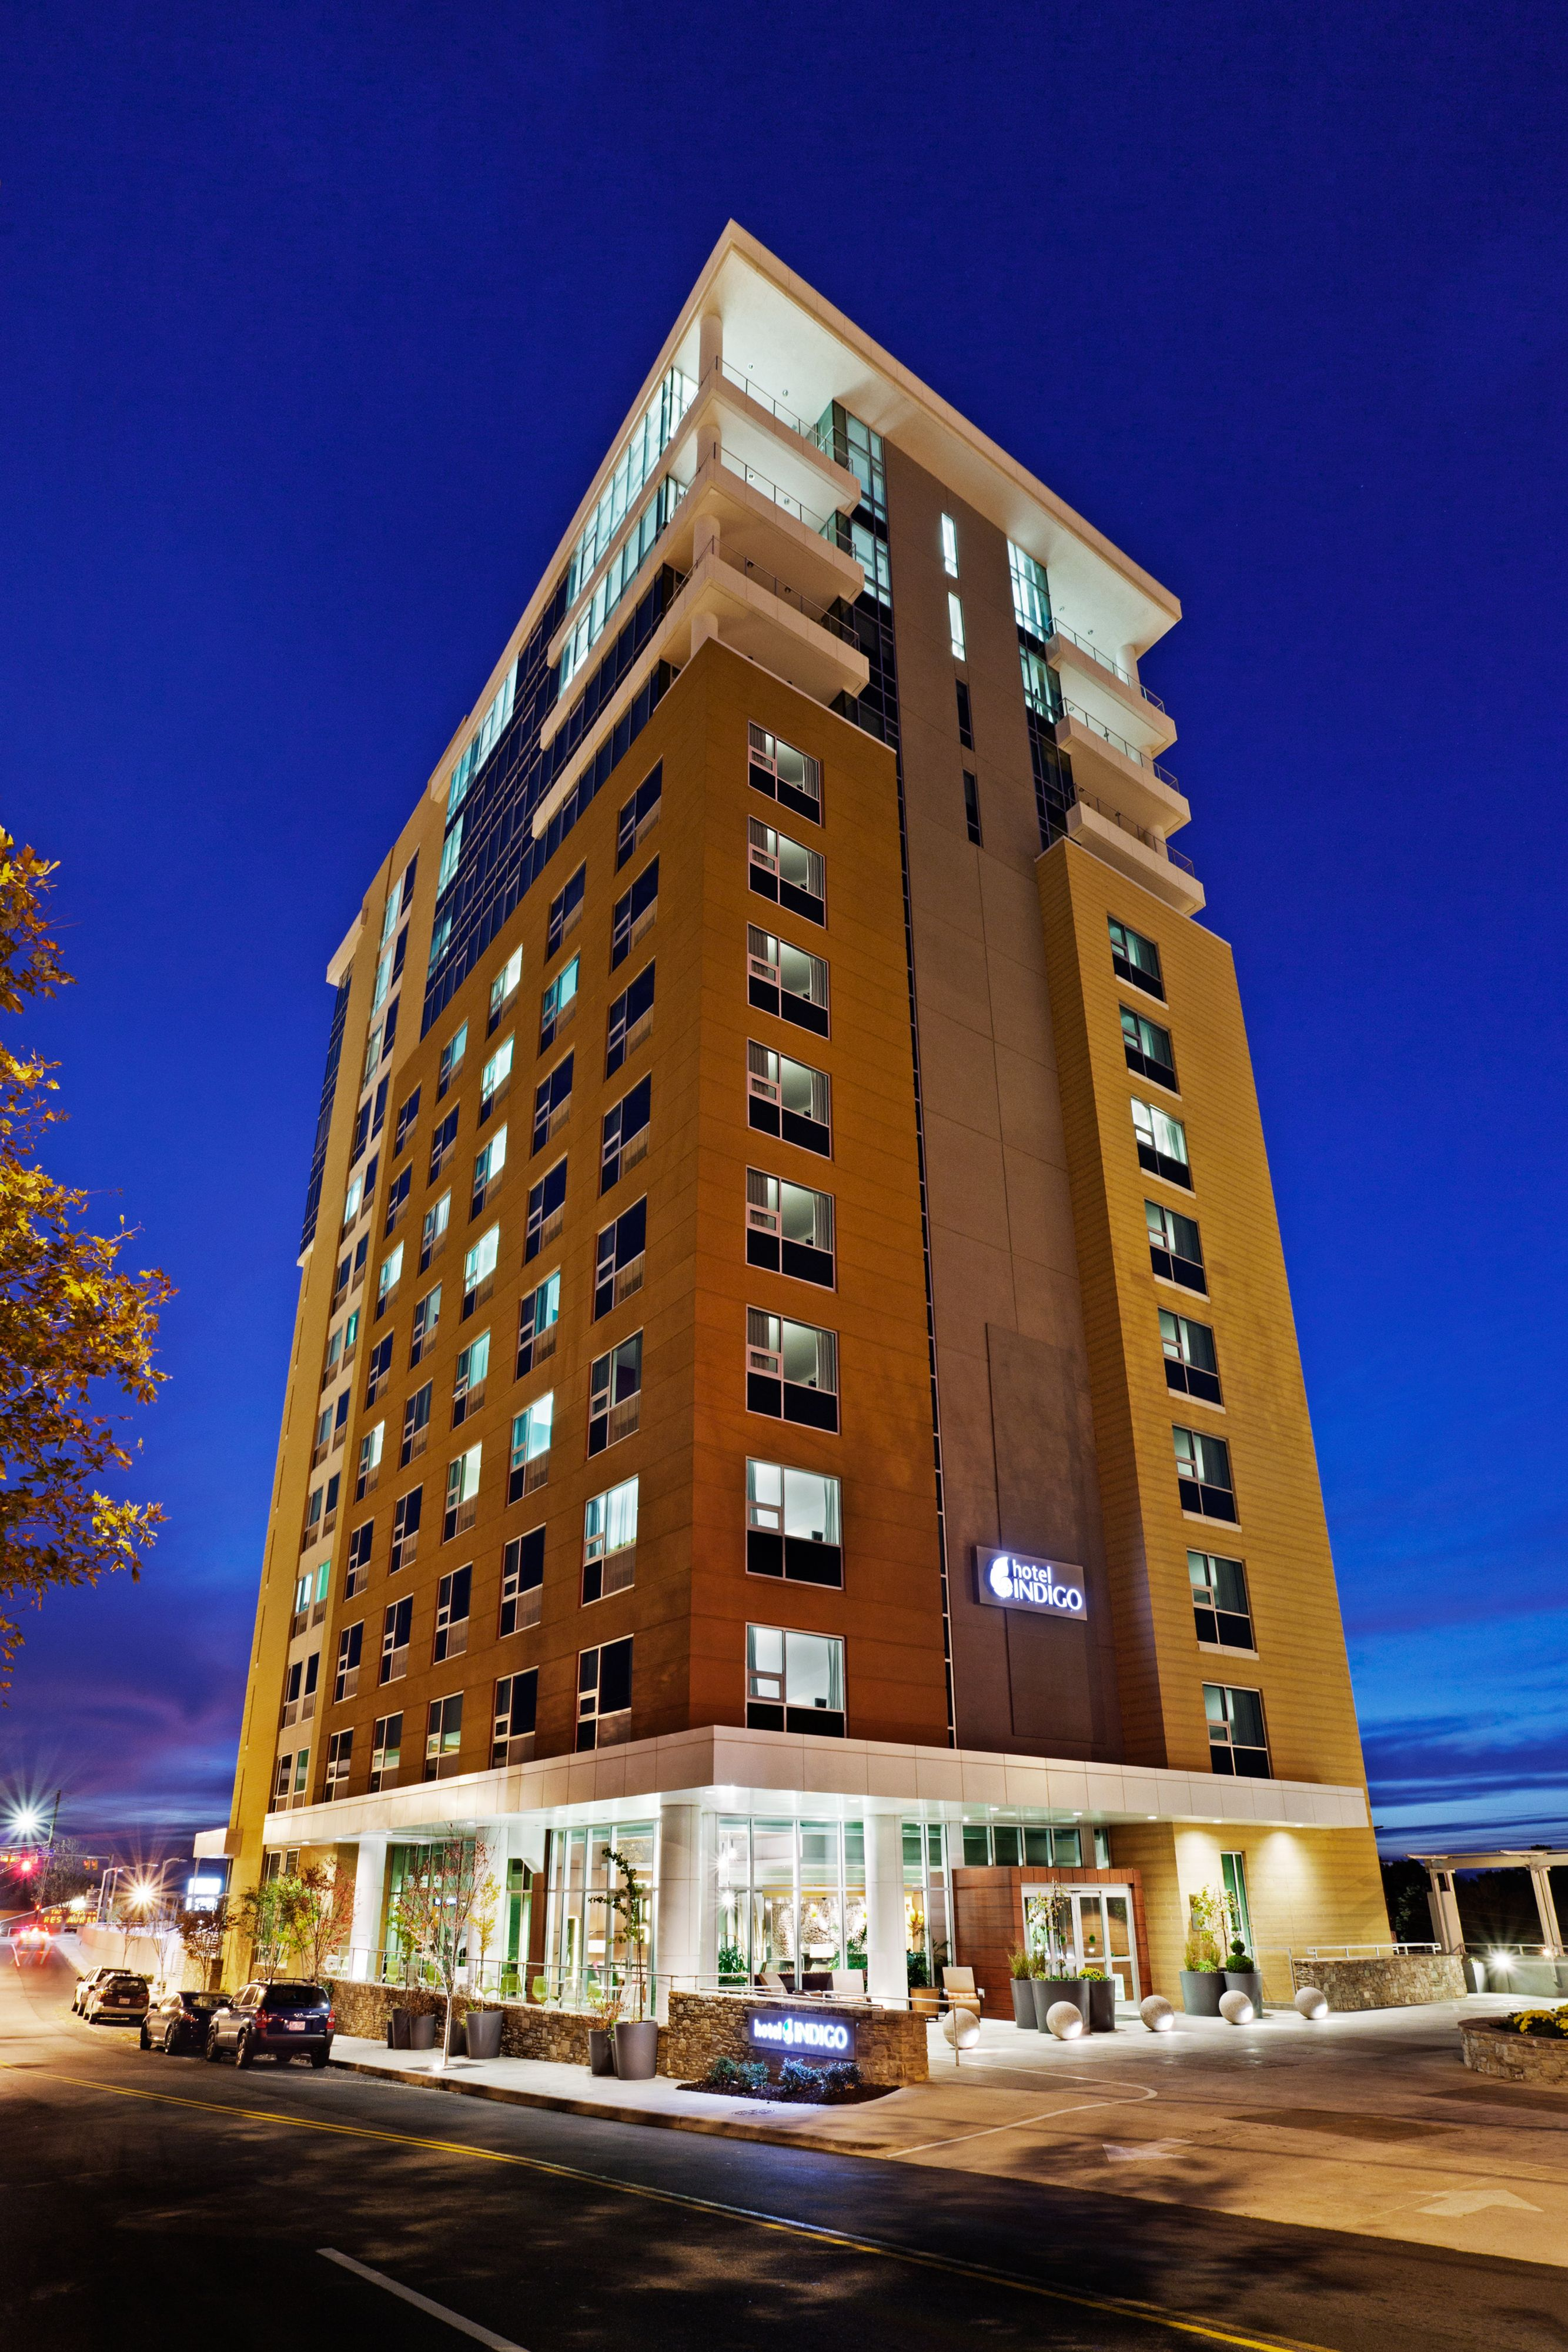 Hotels Downtown Windsor On